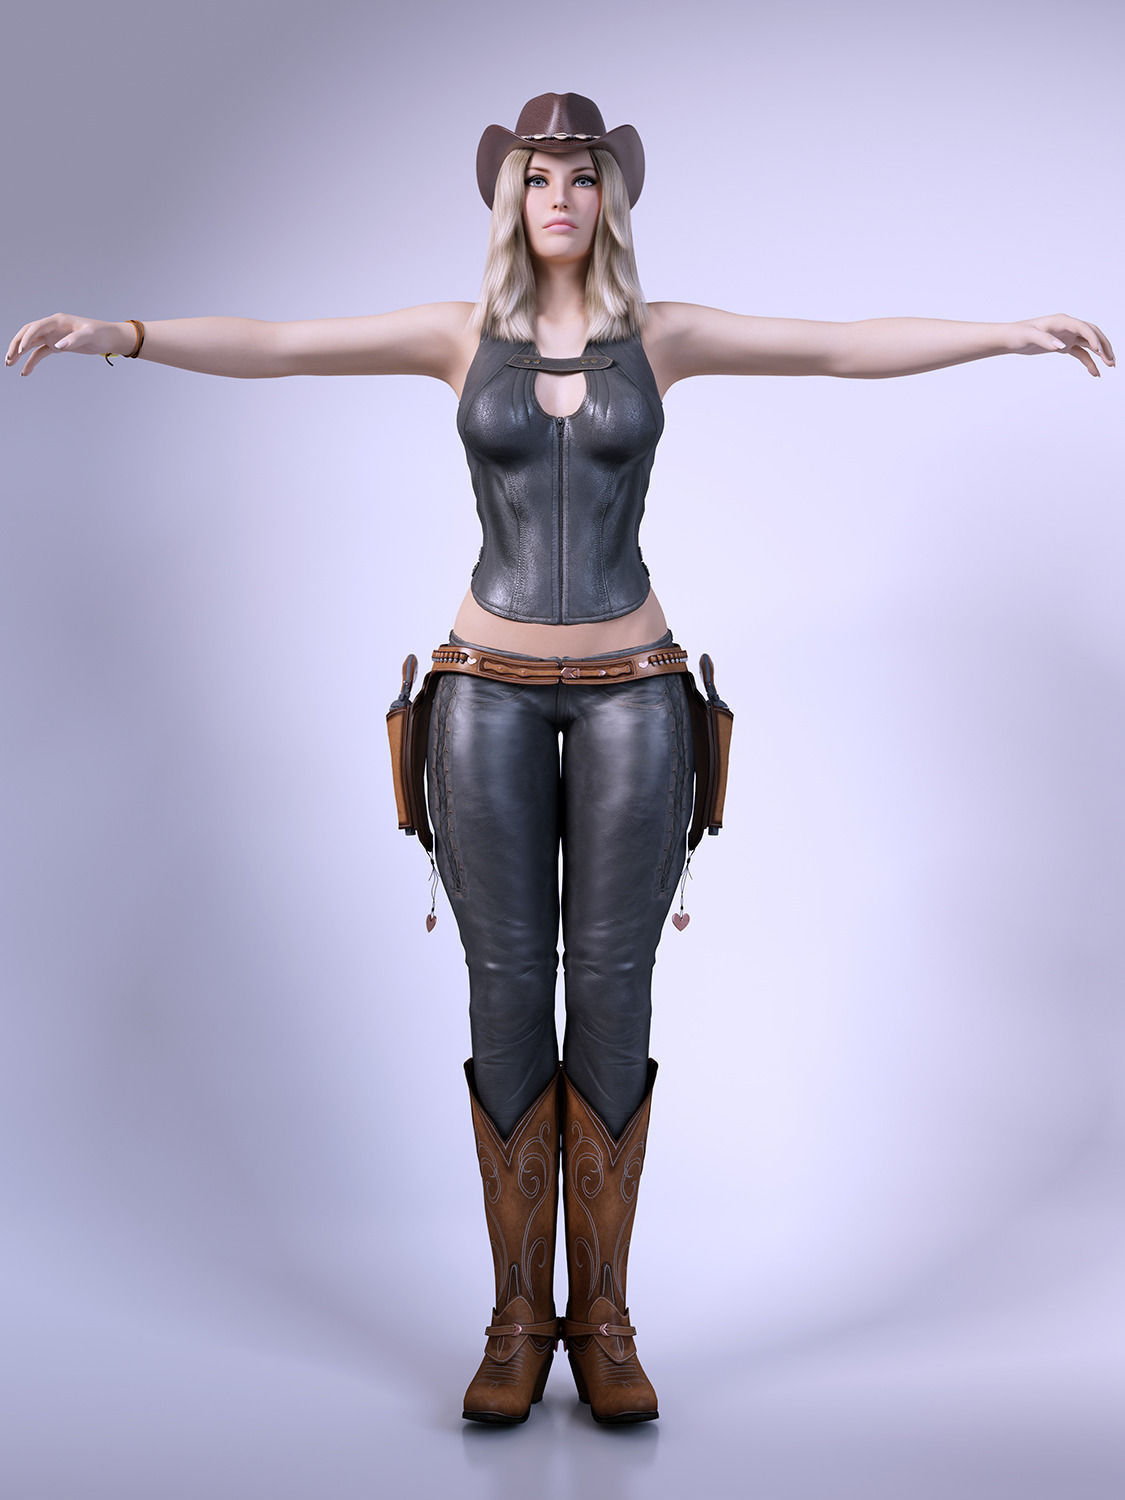 3d Models For Poser And Daz Studio: Cowgirl 3D Model .max .obj .fbx